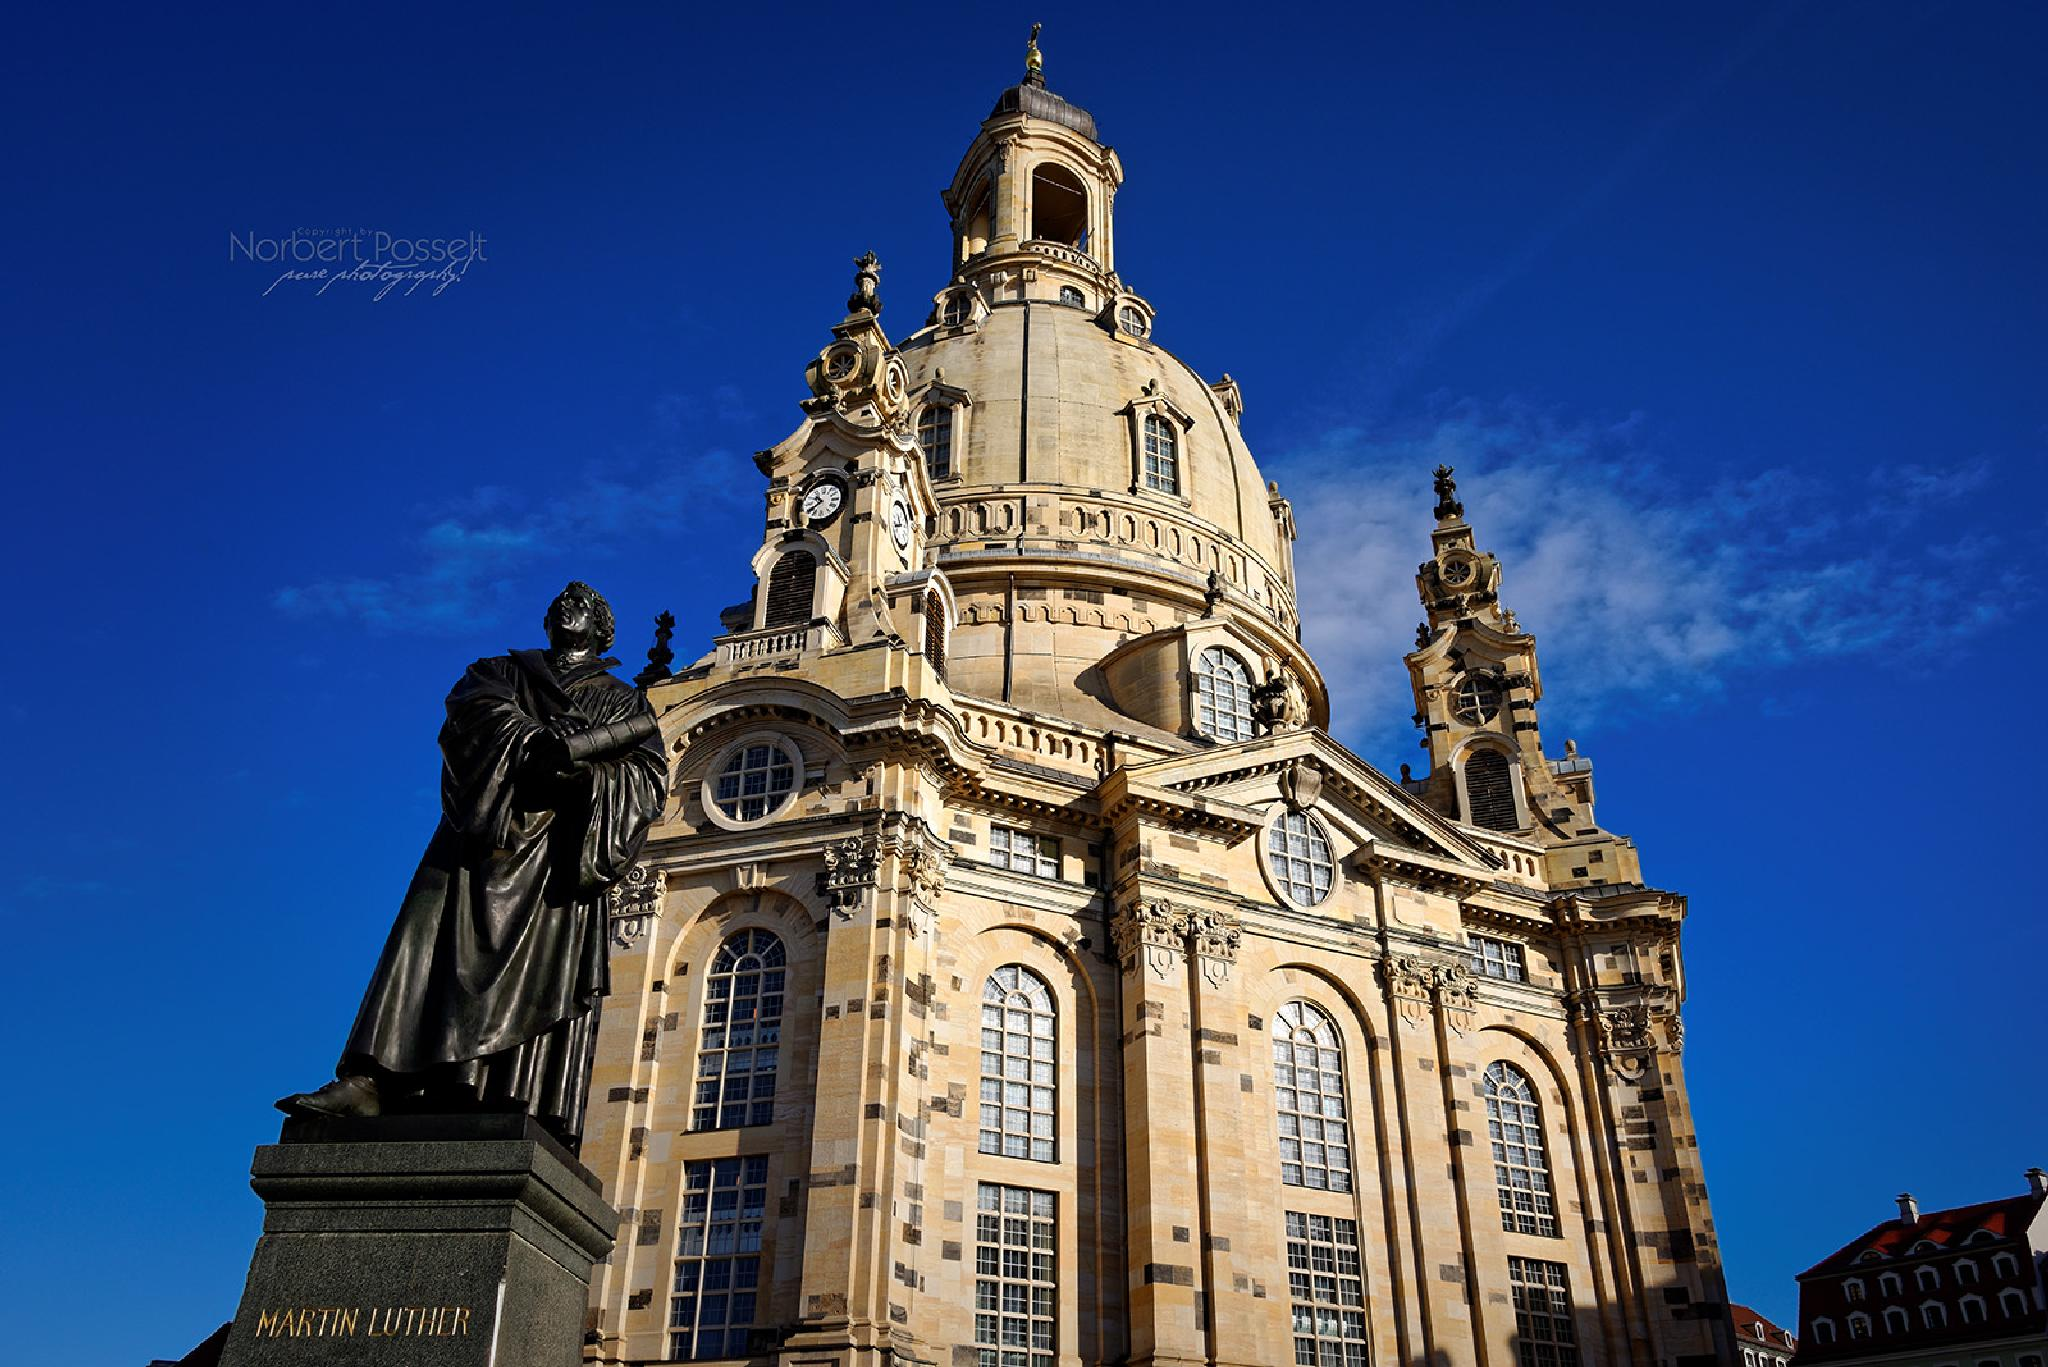 Church of Our Lady Dresden by Norbert Posselt